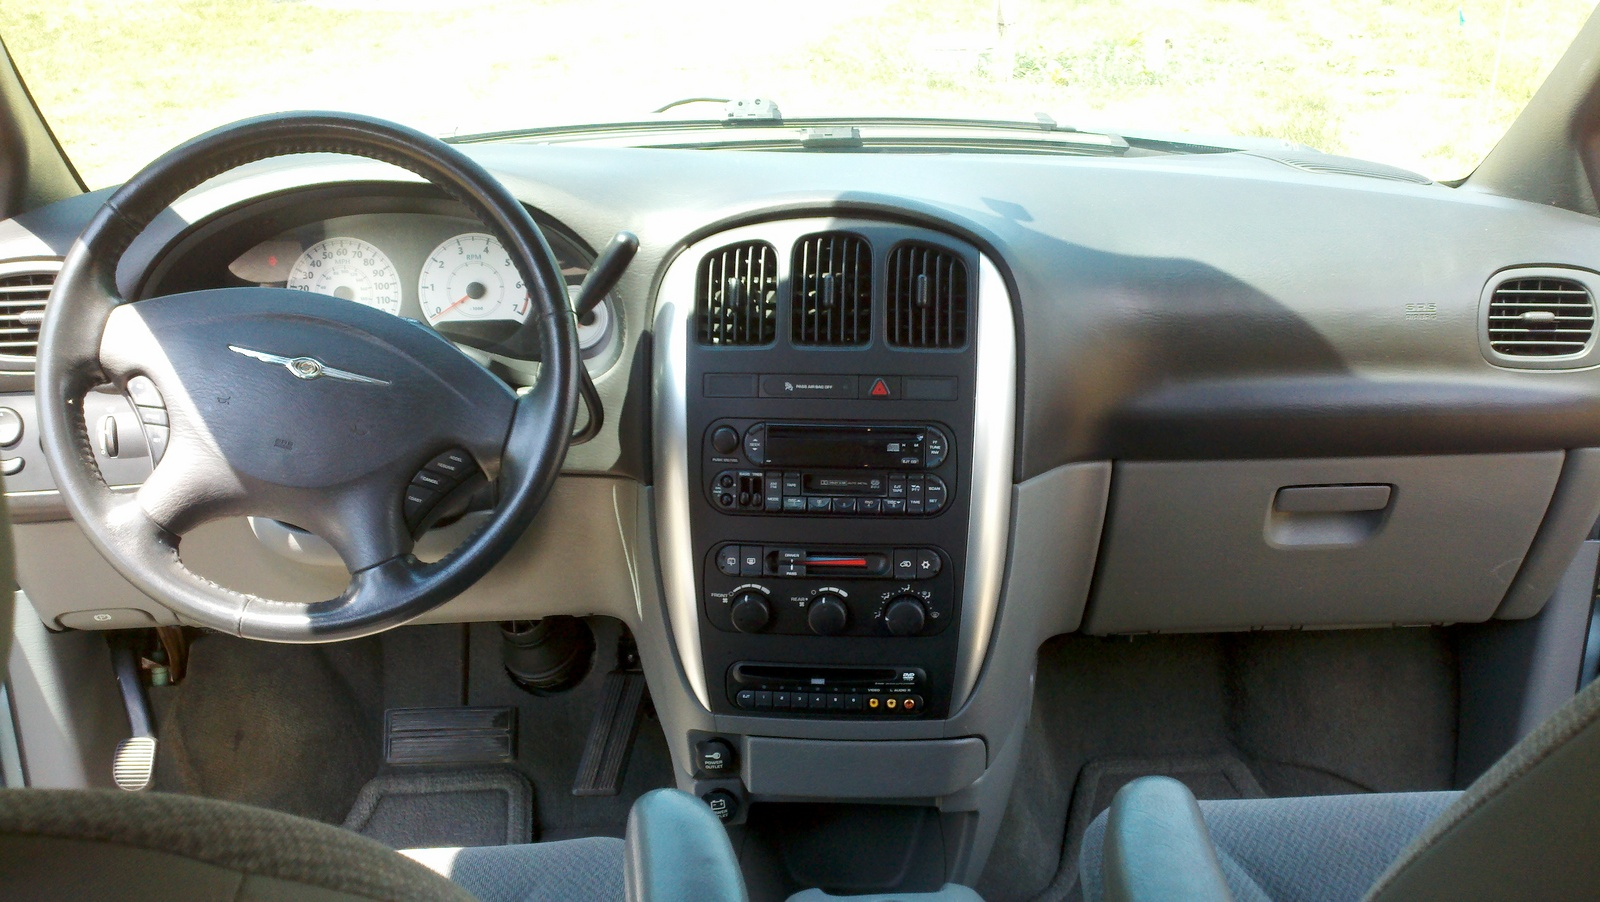 2005 dodge grand caravan interior fuse box 2005 jeep laredo interior fuse box elsavadorla. Black Bedroom Furniture Sets. Home Design Ideas